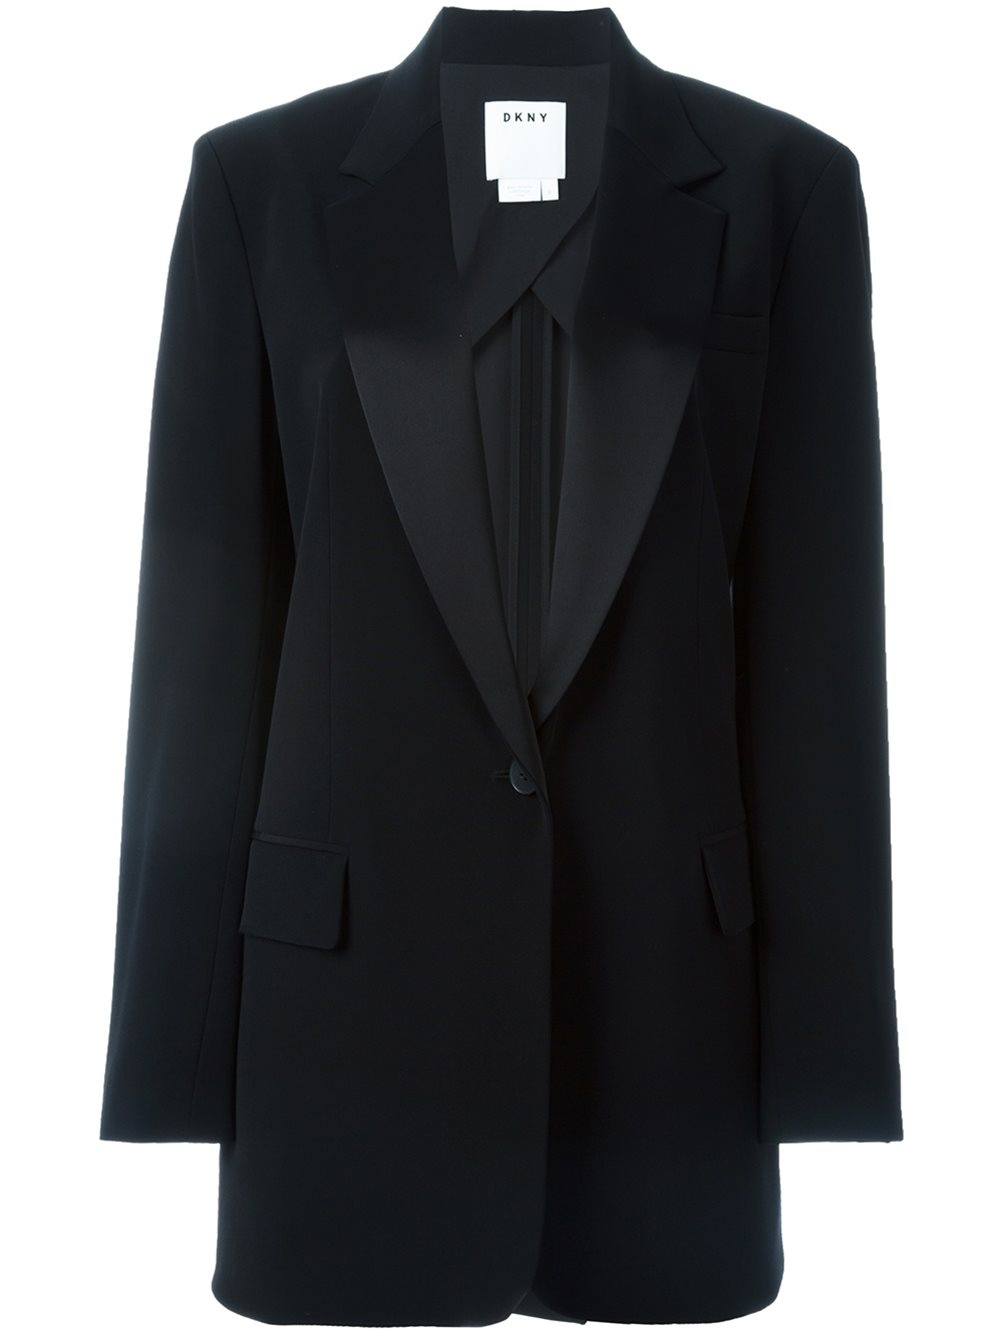 You will find a high quality long tuxedo jacket at an affordable price from brands like Left ROM, XMY3DWX, dower me, SZMANLIZI MALE COSTUMES, TPSAADE, annefash, Anylinksuit, Gwenhwyfar, LOBUDEK, linyixun.